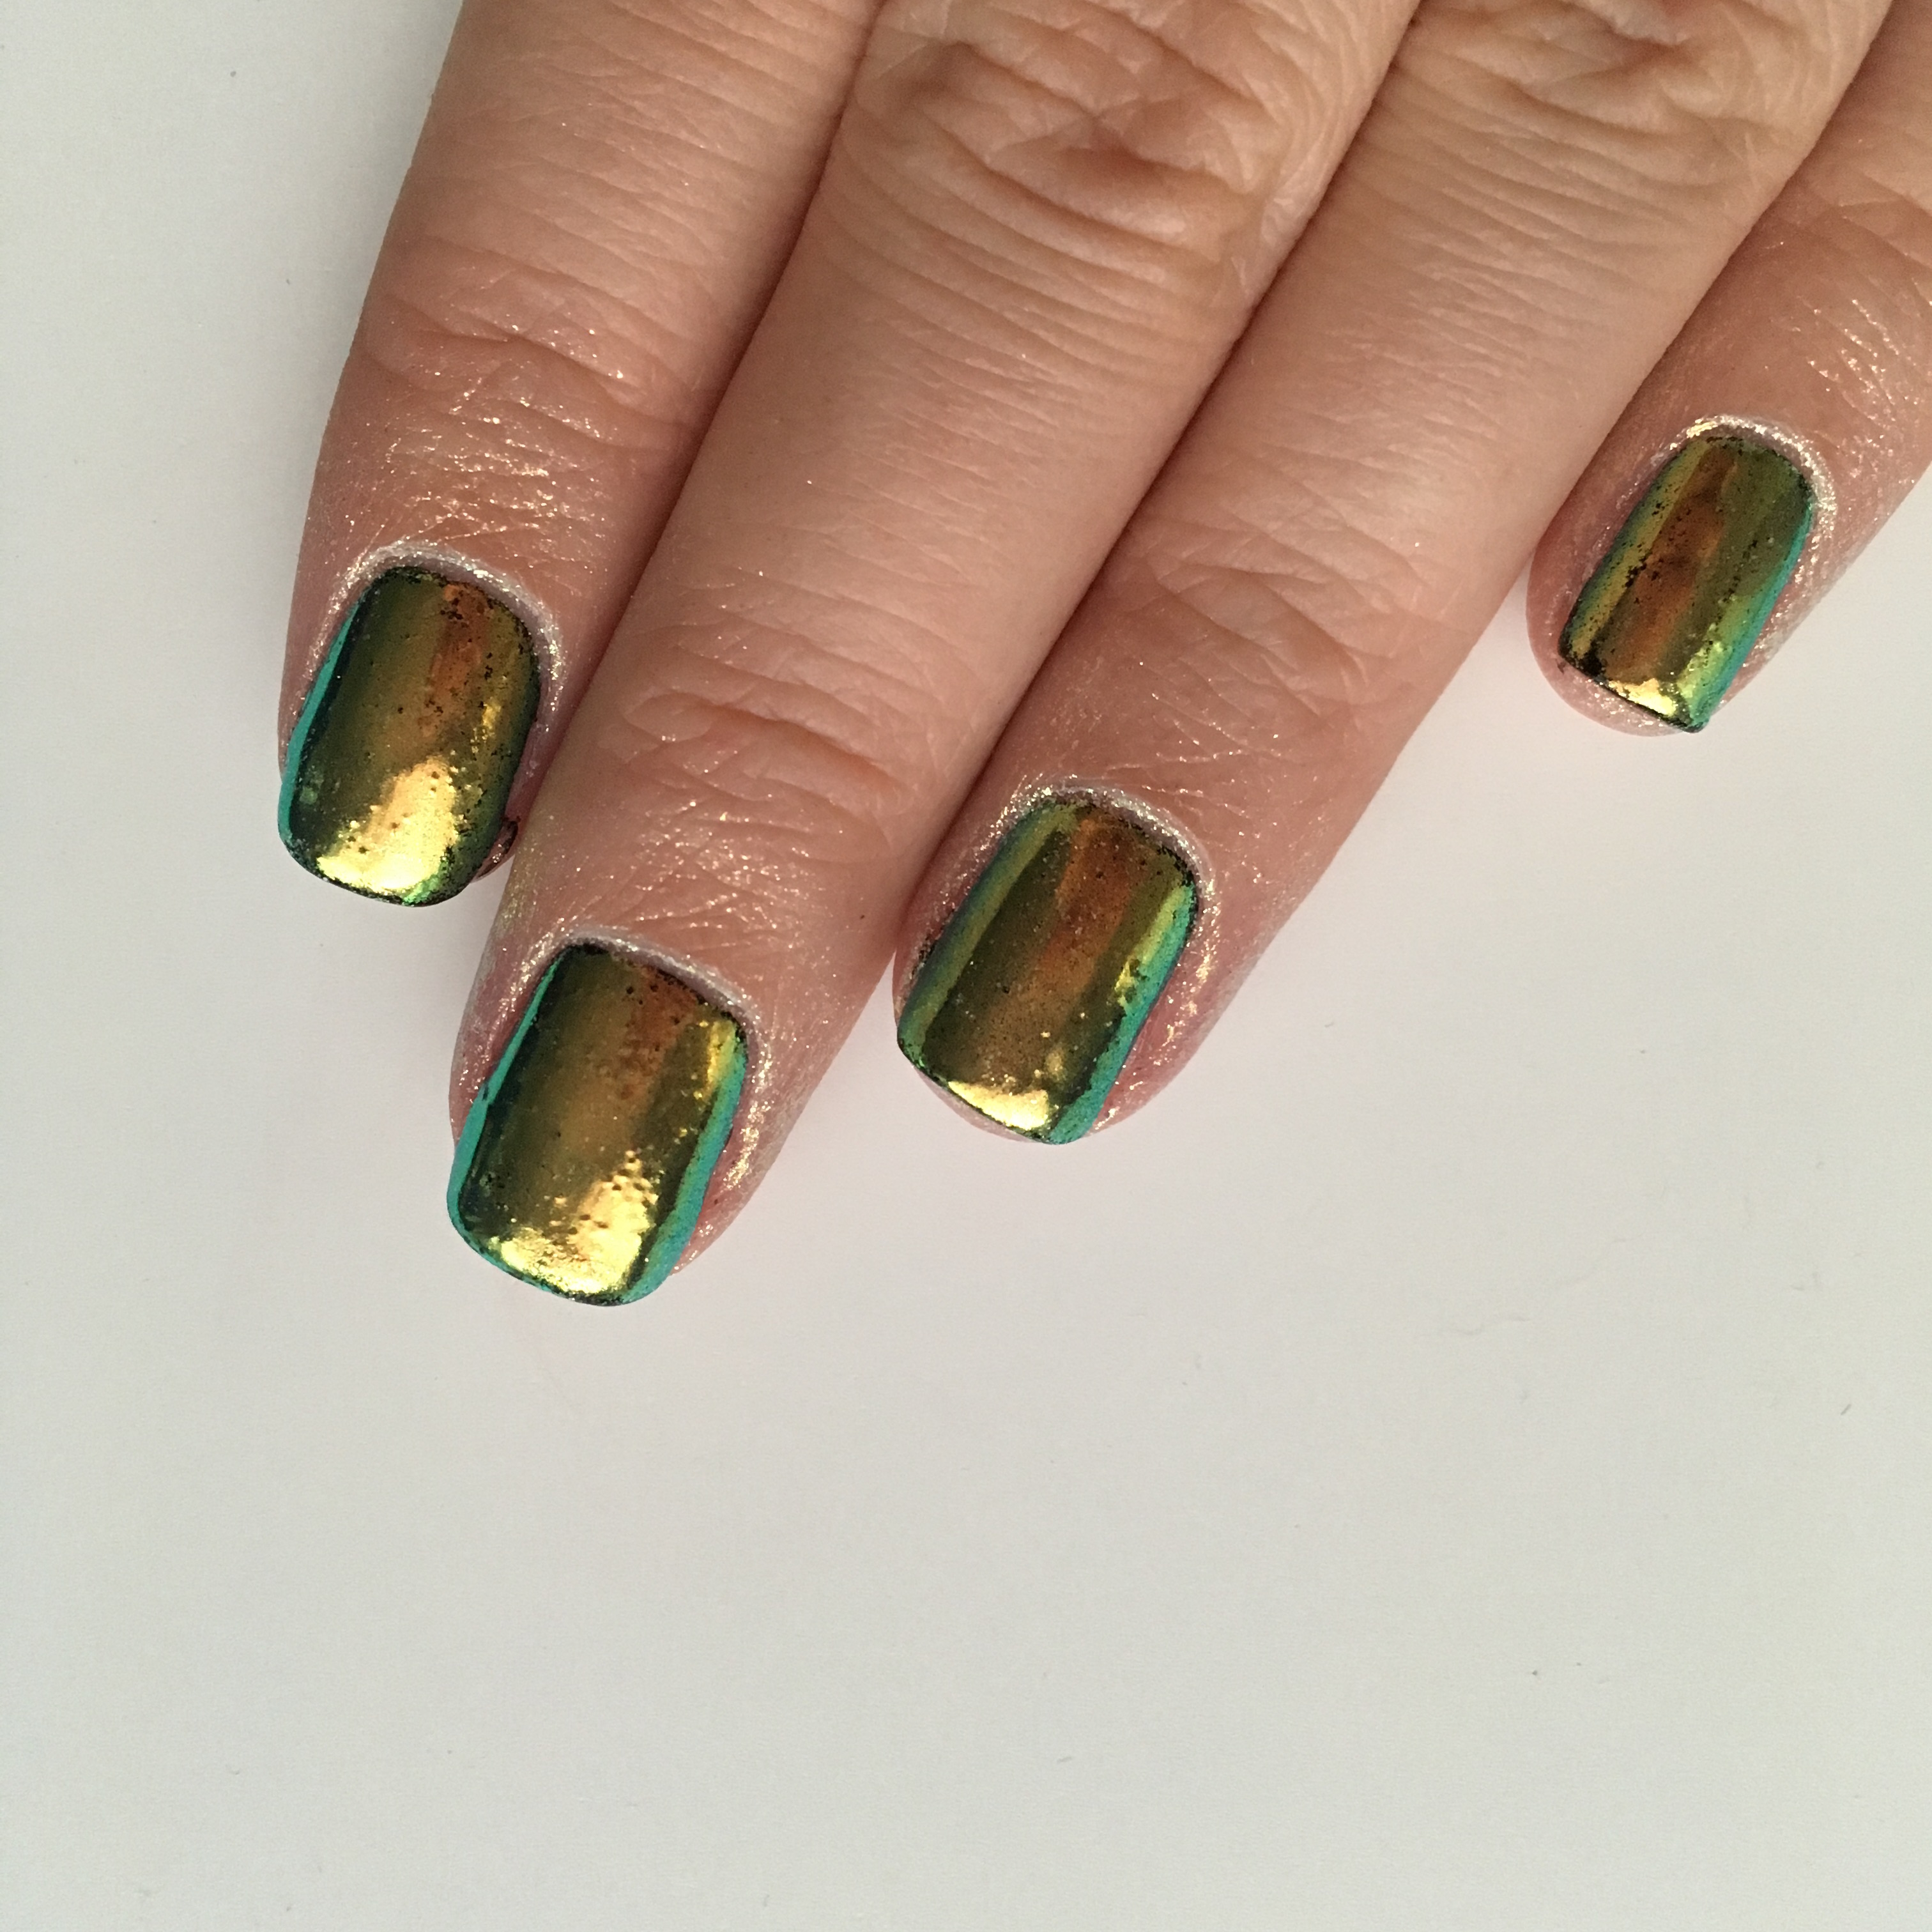 Aurora Supreme Pigment from Whats Up Nails